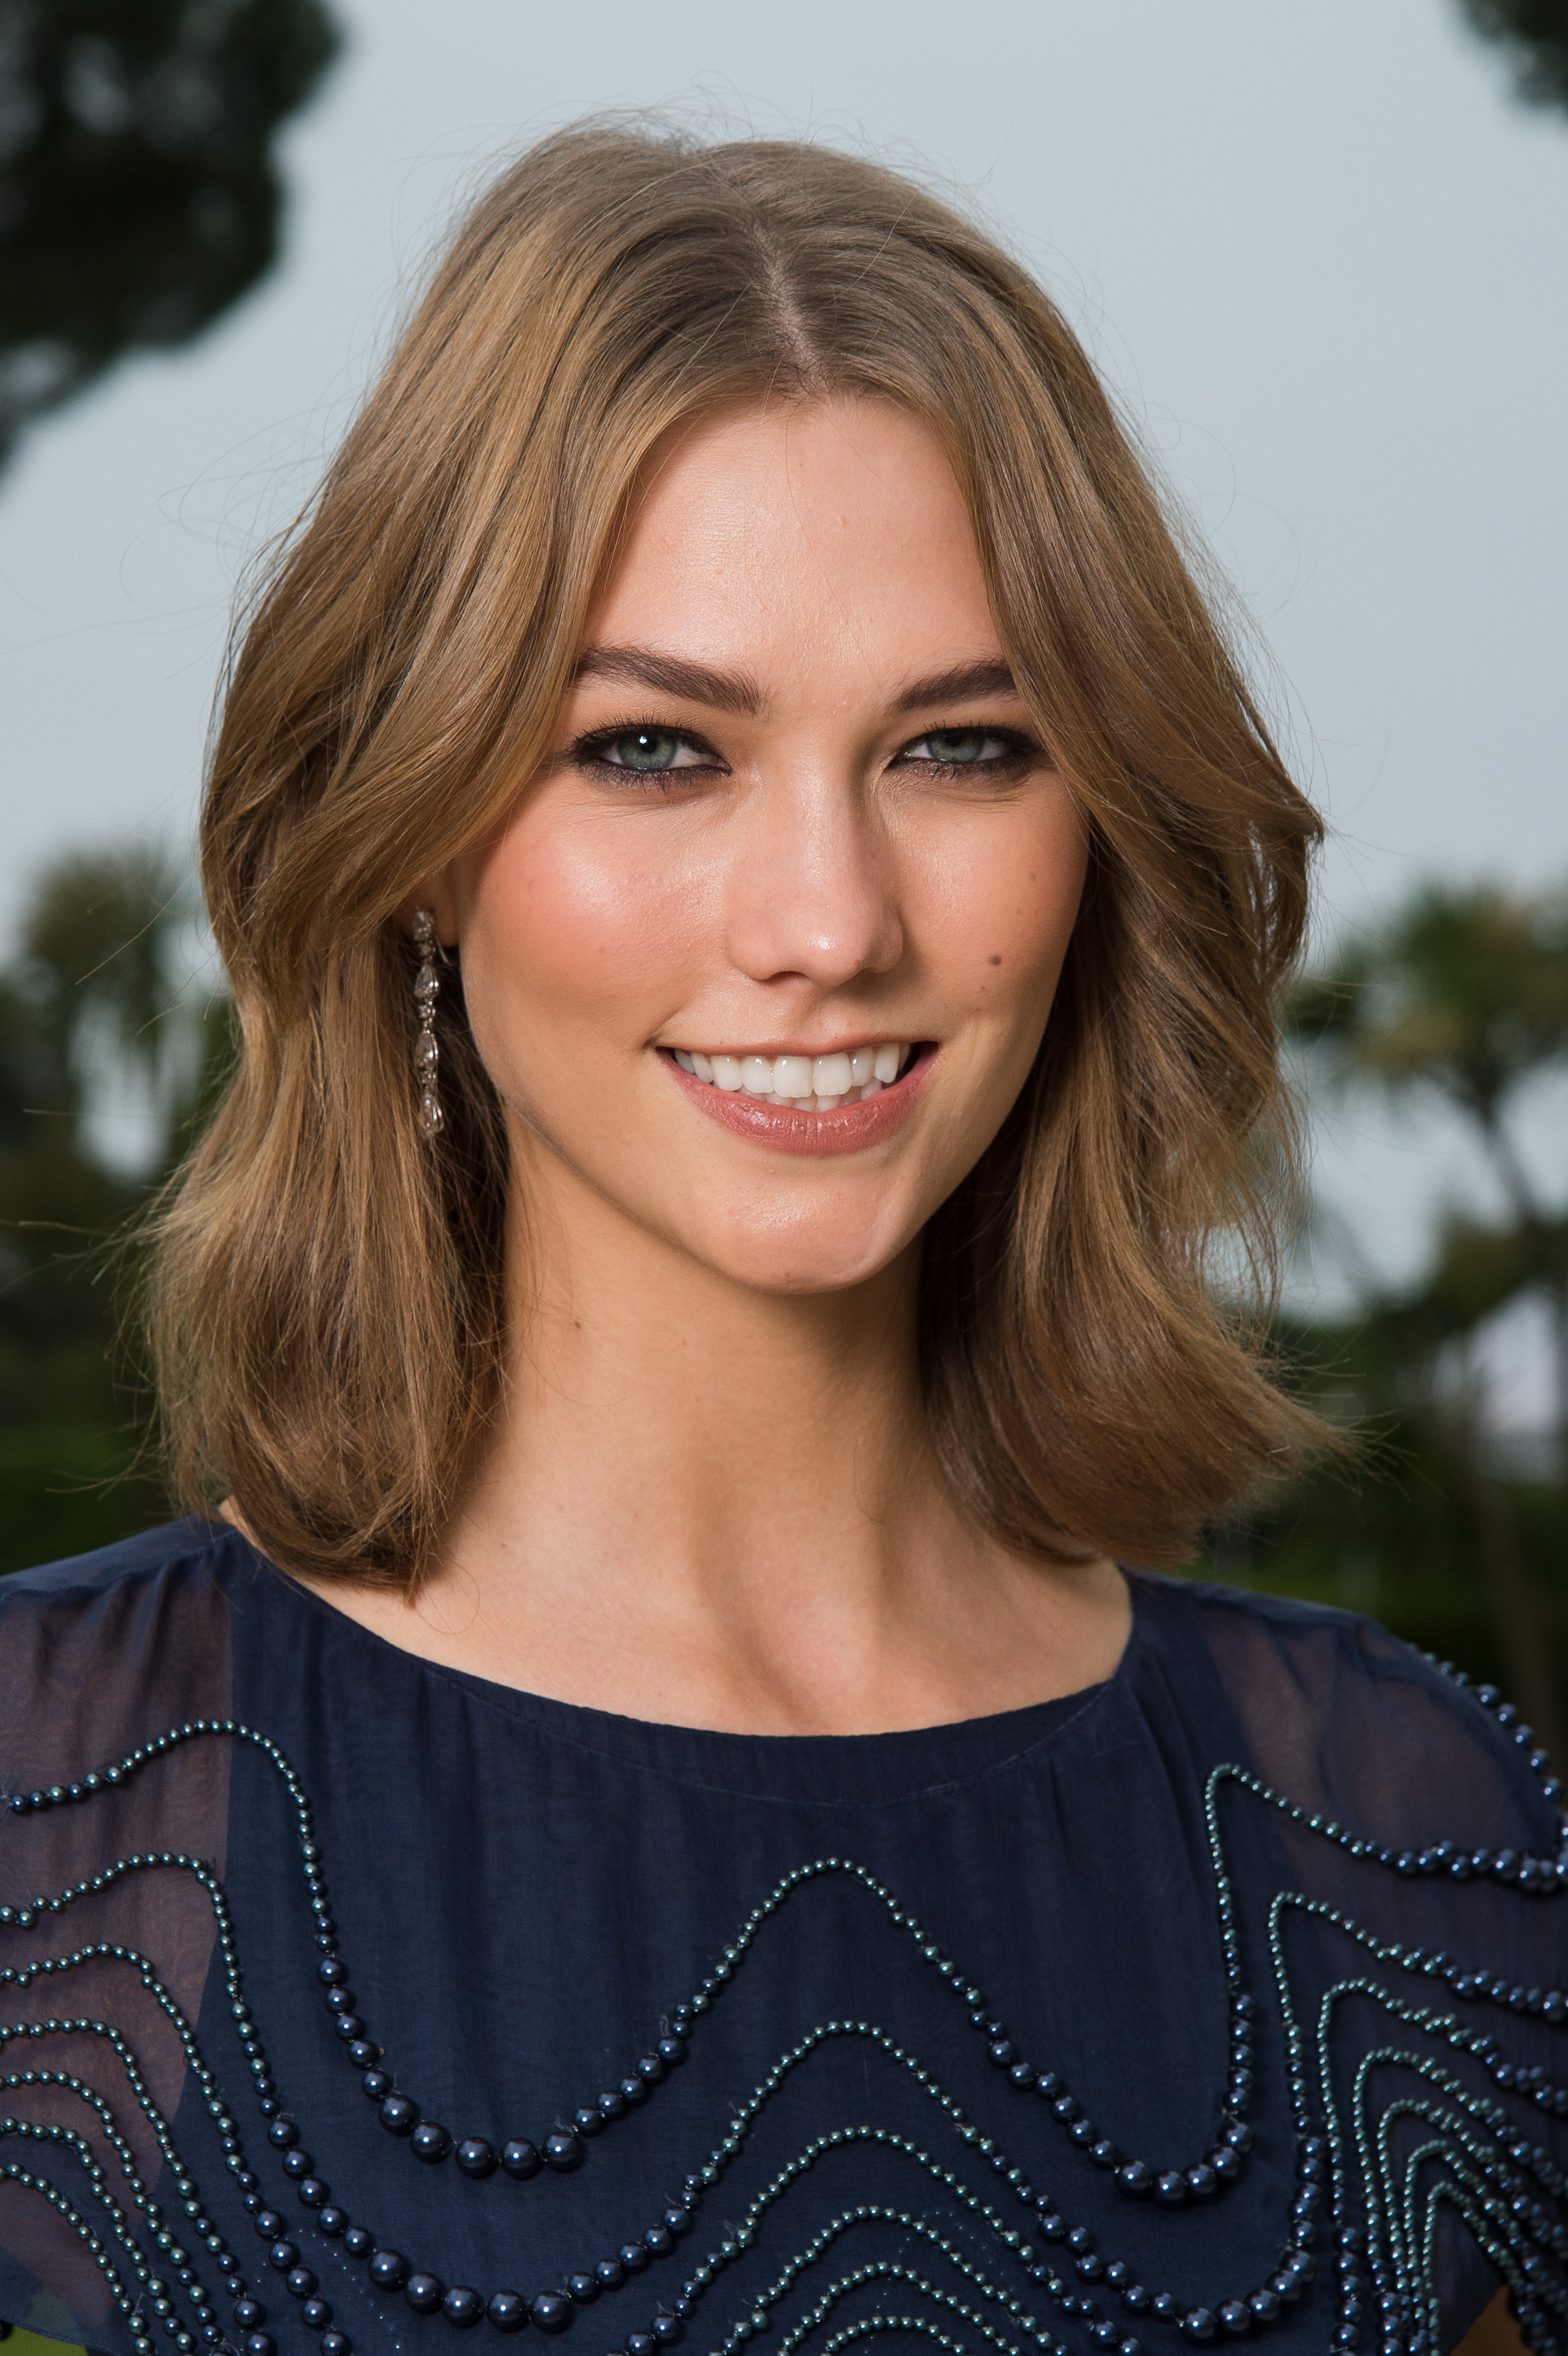 Karlie Kloss Short Hair   Uphairstyle Inside Karlie Kloss Short Haircuts (View 14 of 25)